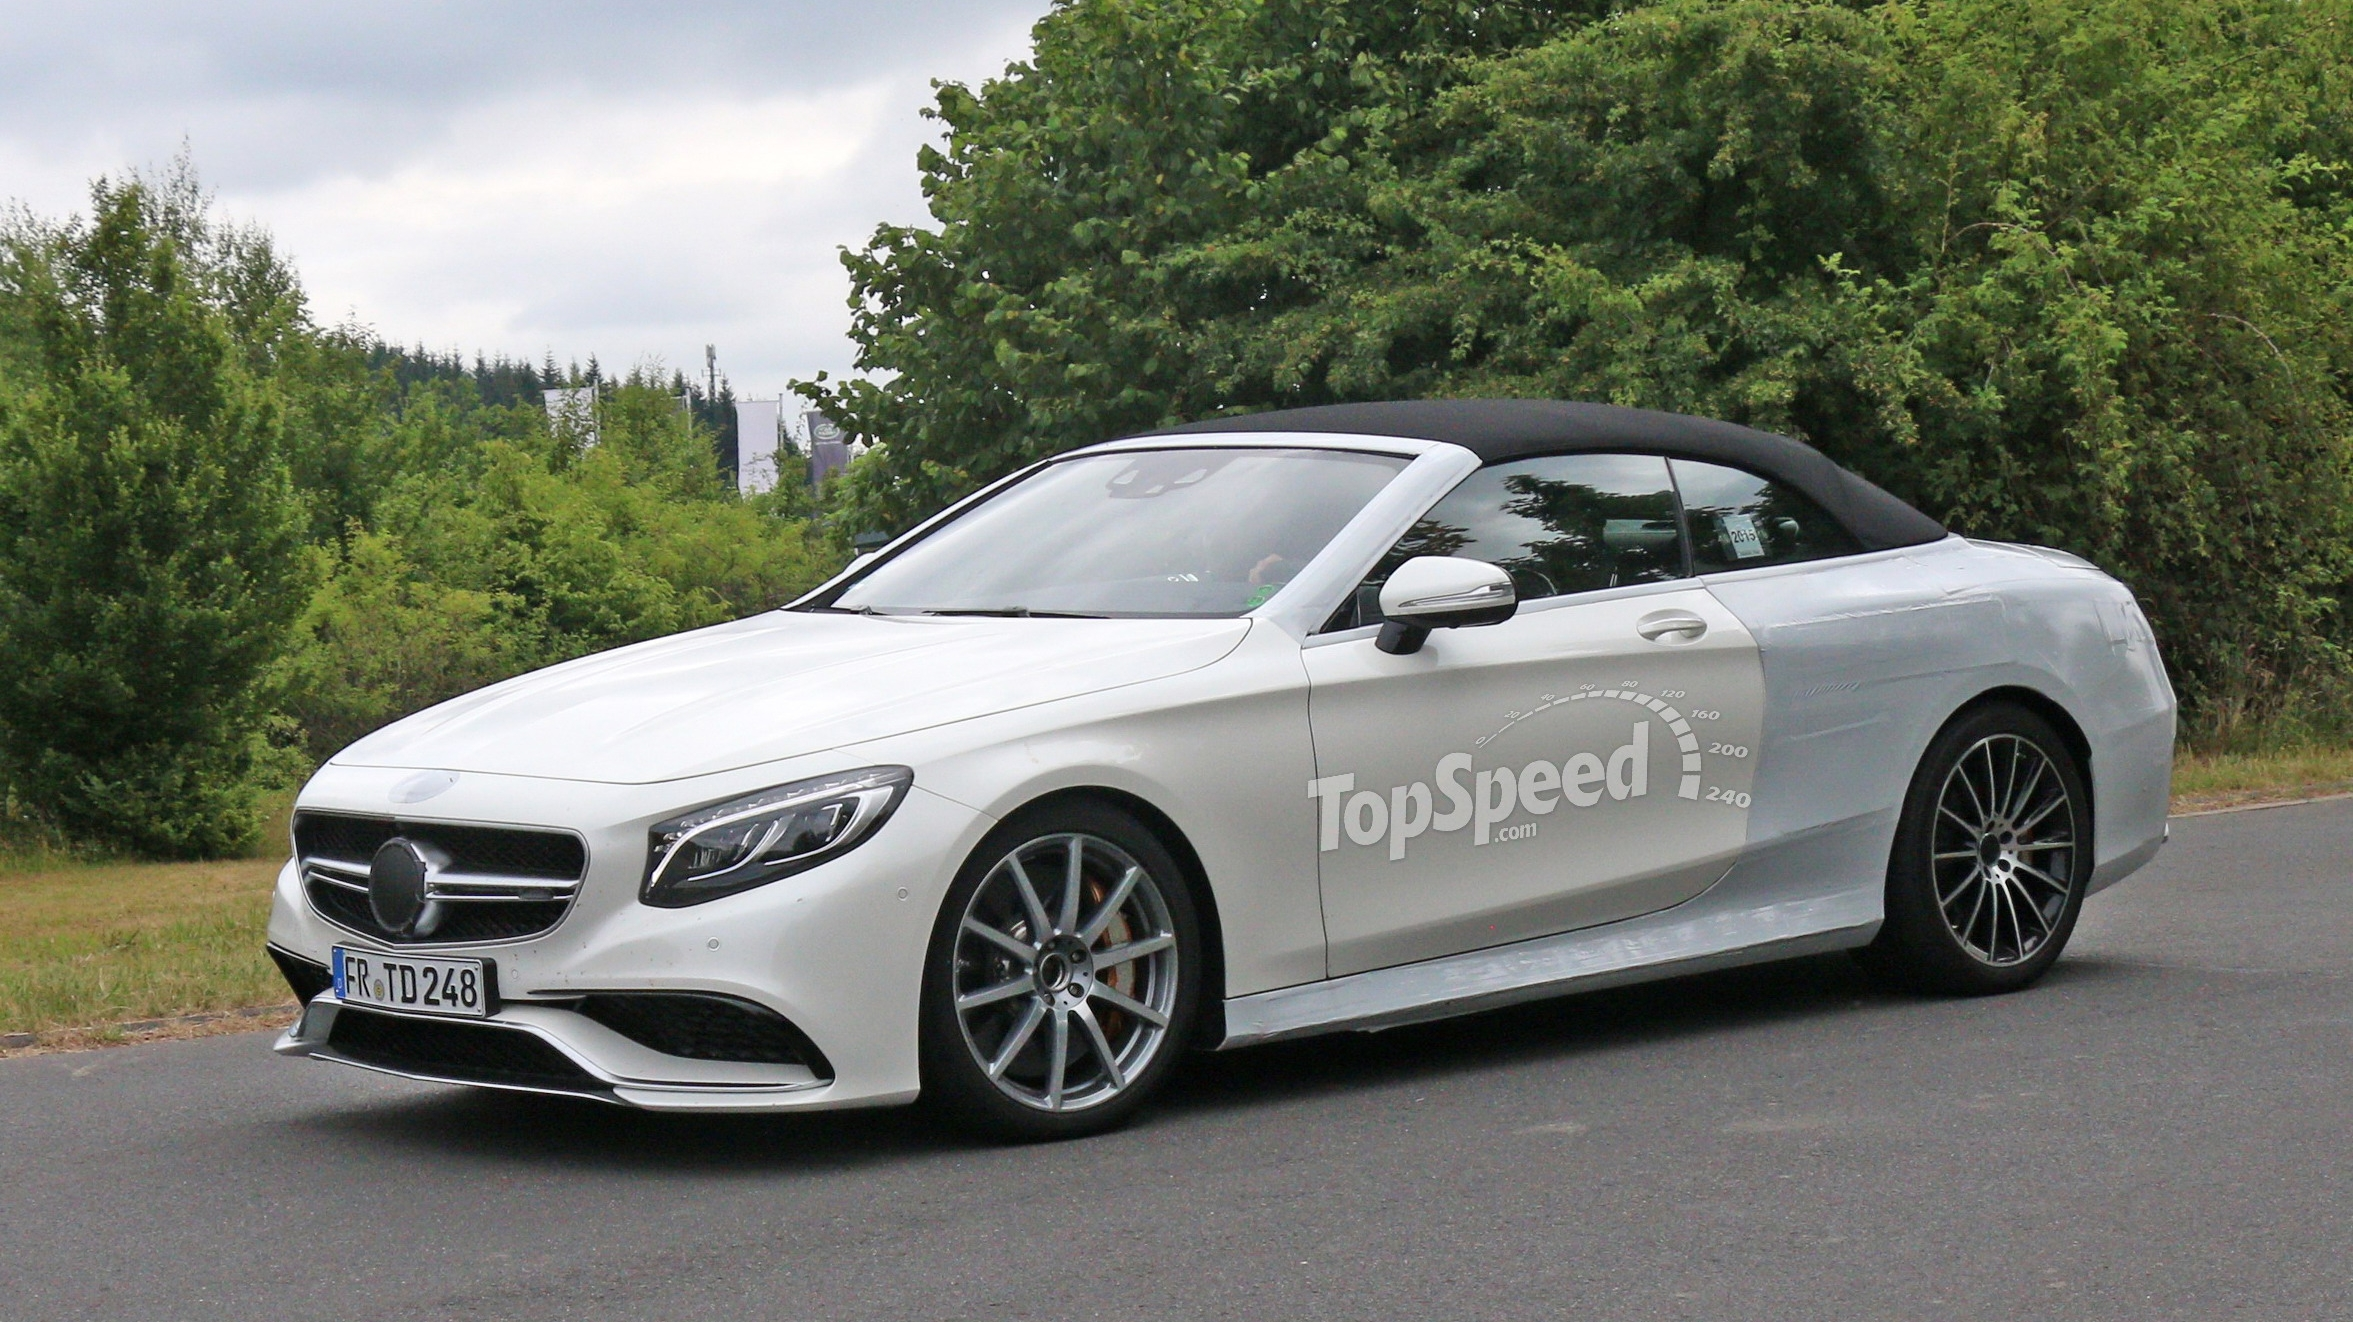 https://pictures.topspeed.com/IMG/jpg/201507/2017-mercedes-amg-s63-con.jpg